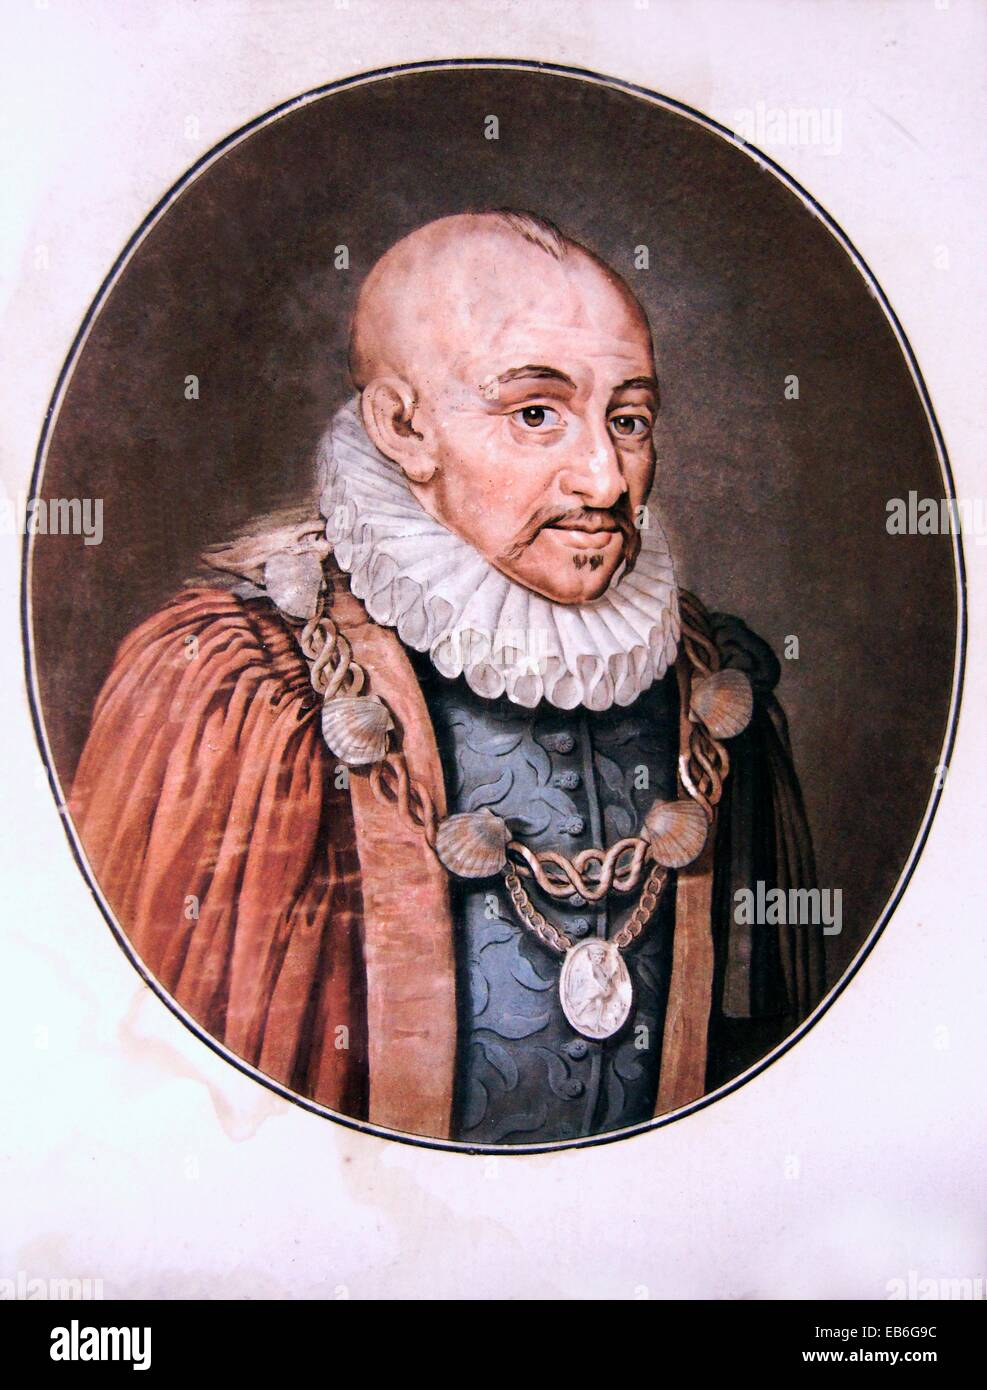 Michel Eyquem de Montaigne (February 28 1533 - September 13 1592) was one of the most influential writers of the - Stock Image